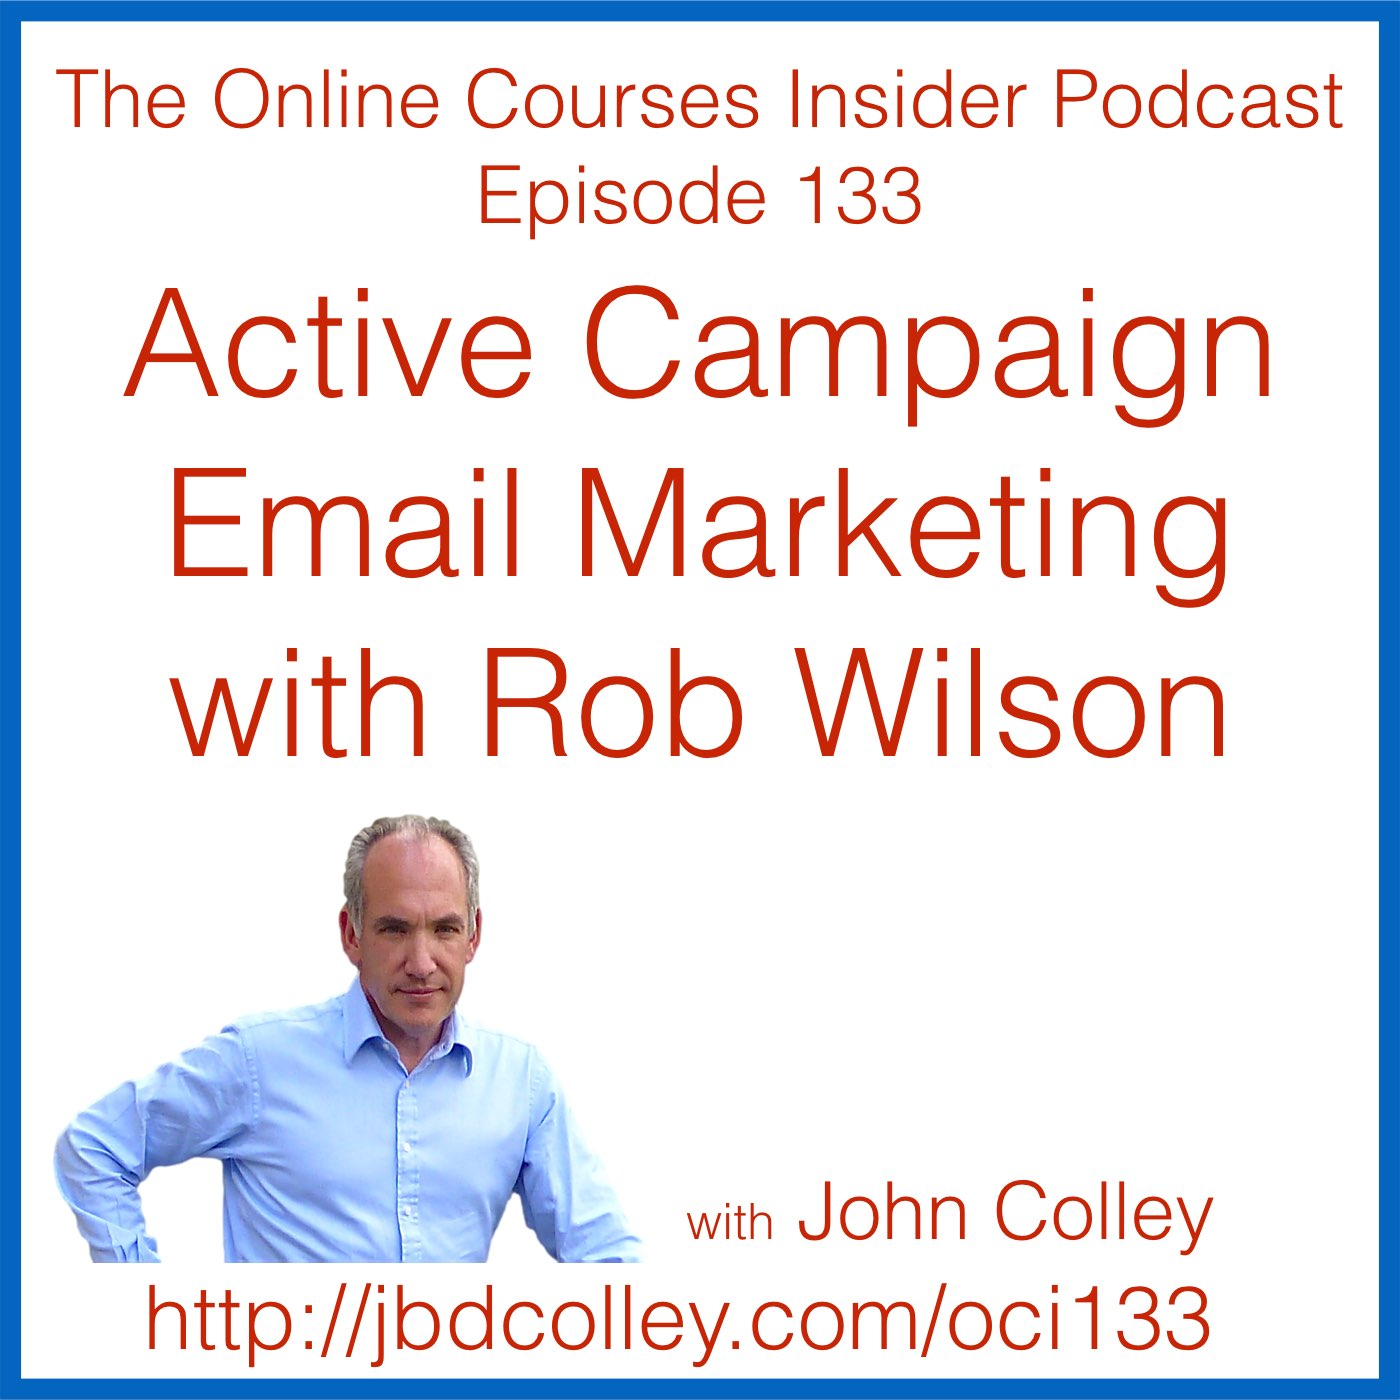 OCI133 Active Campaign Email Marketing with Rob Wilson